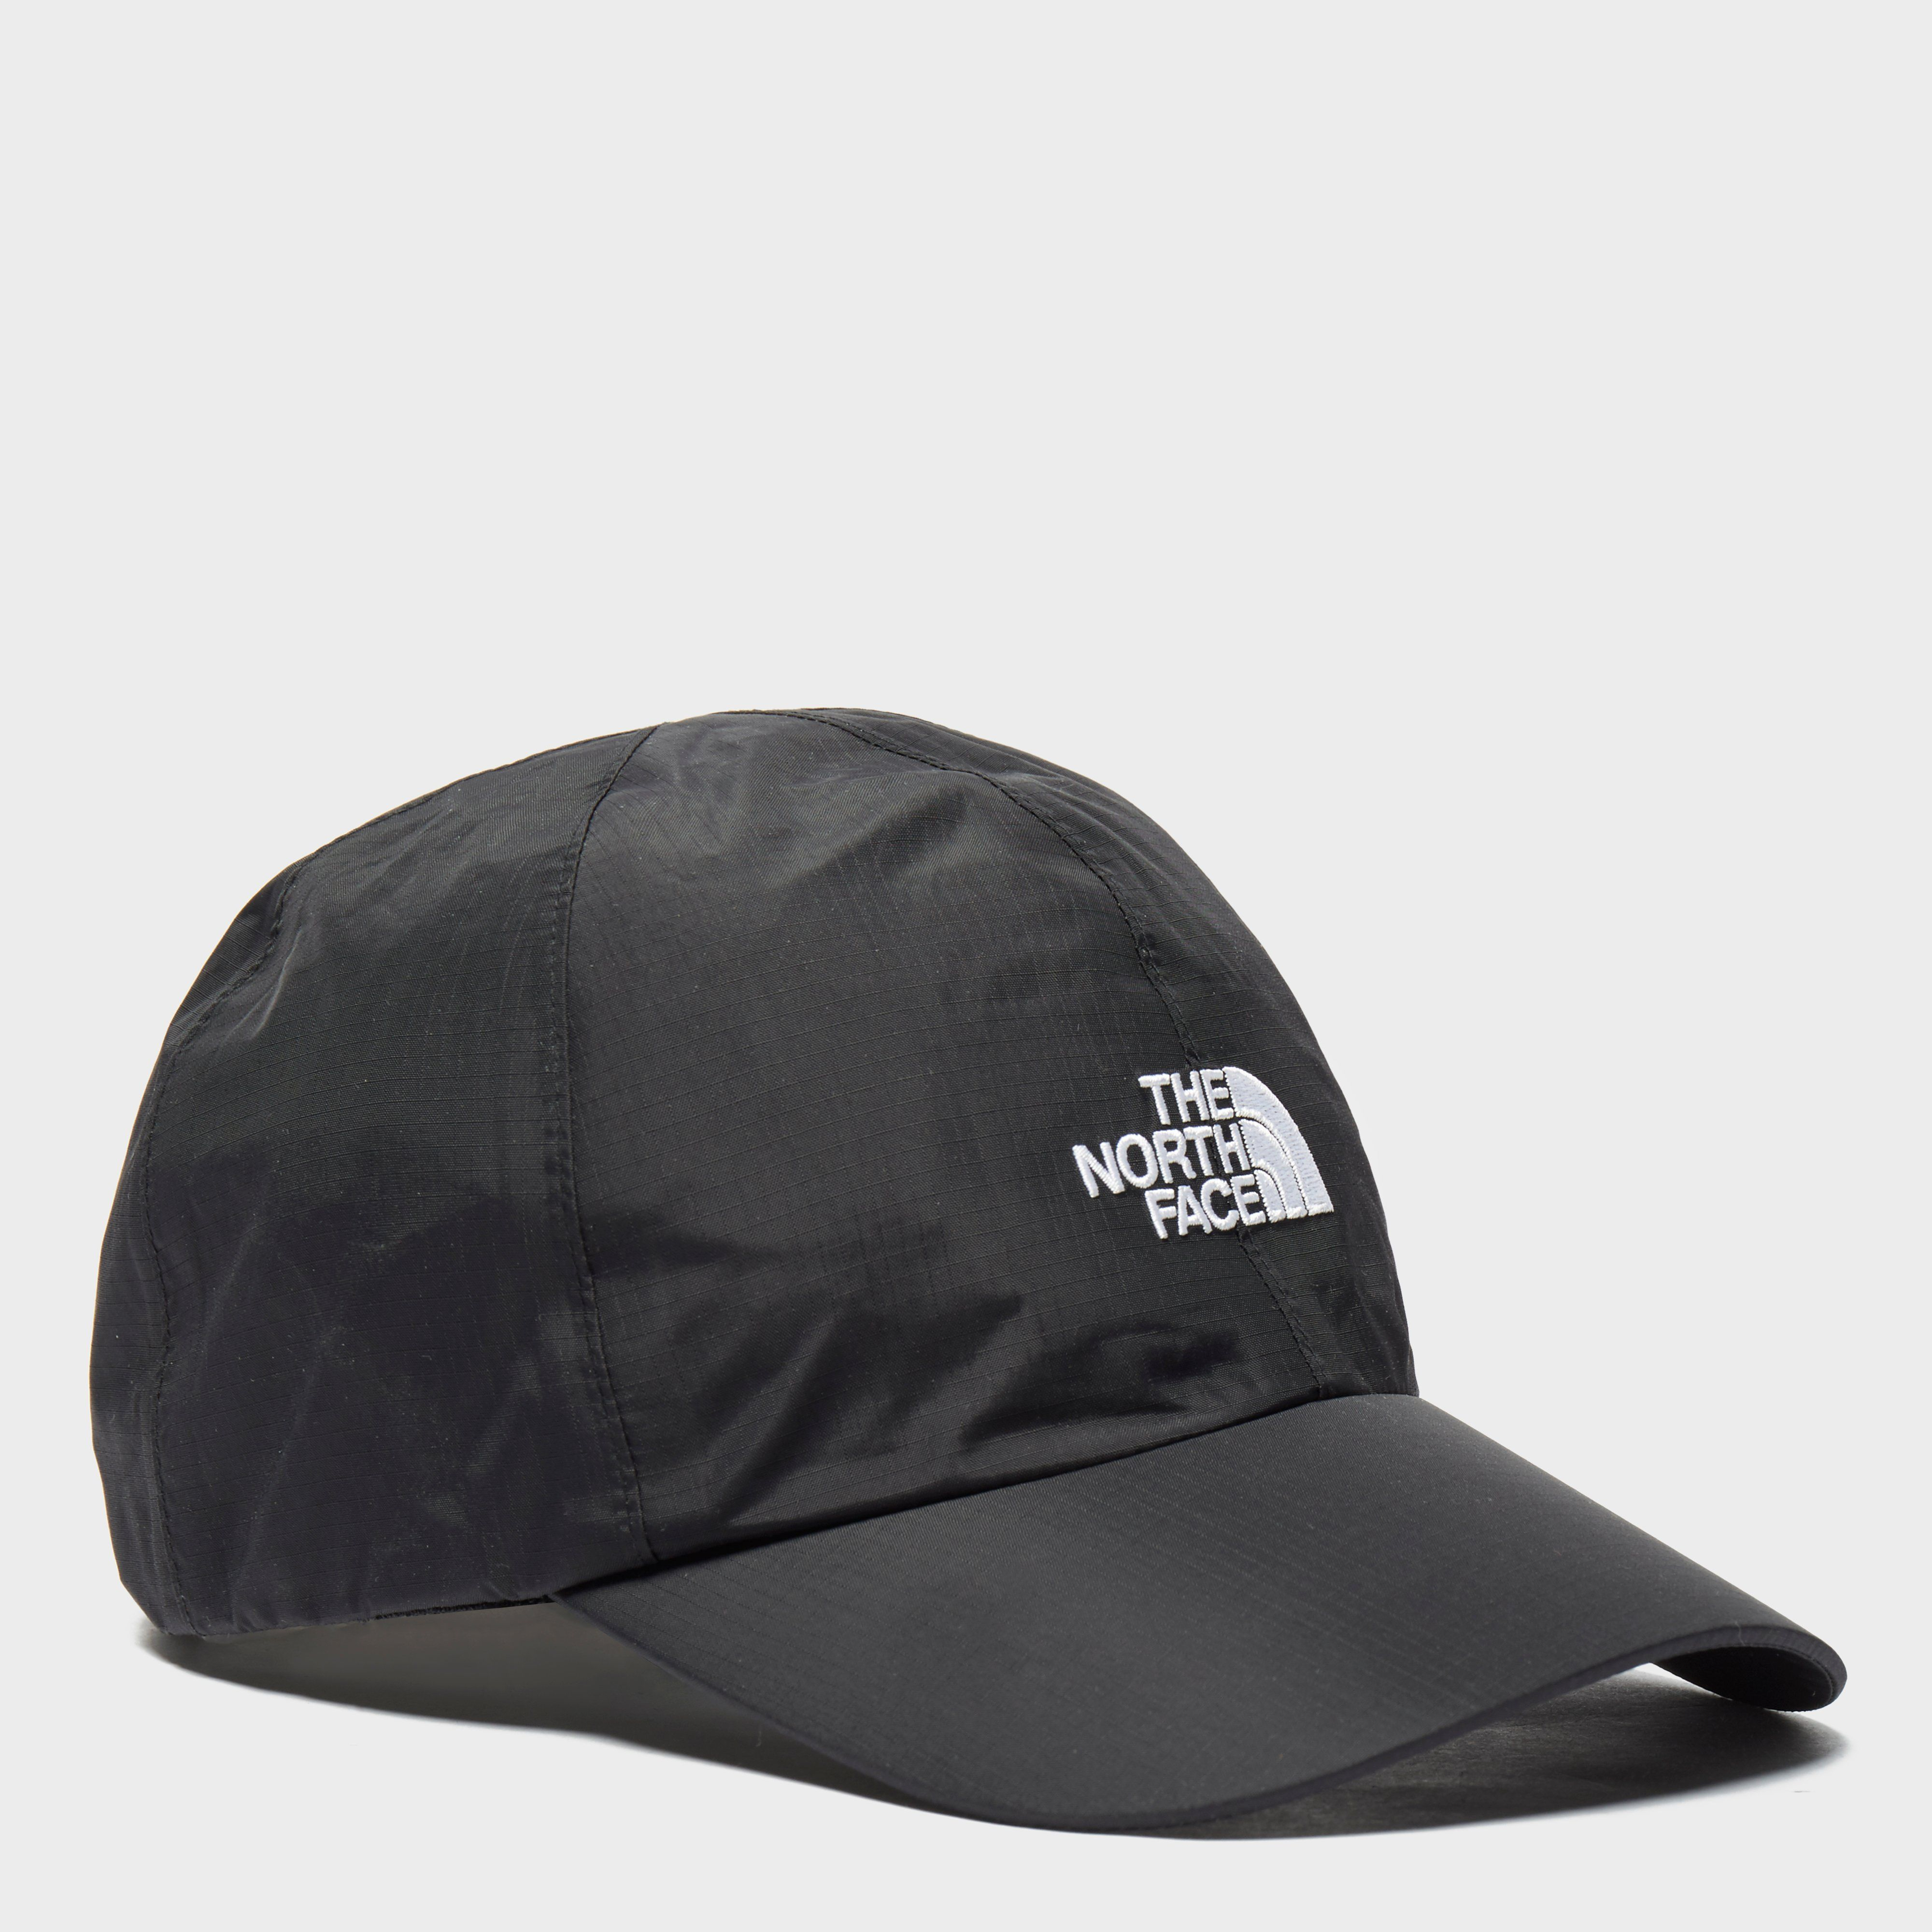 THE NORTH FACE Dryvent™ Logo Cap